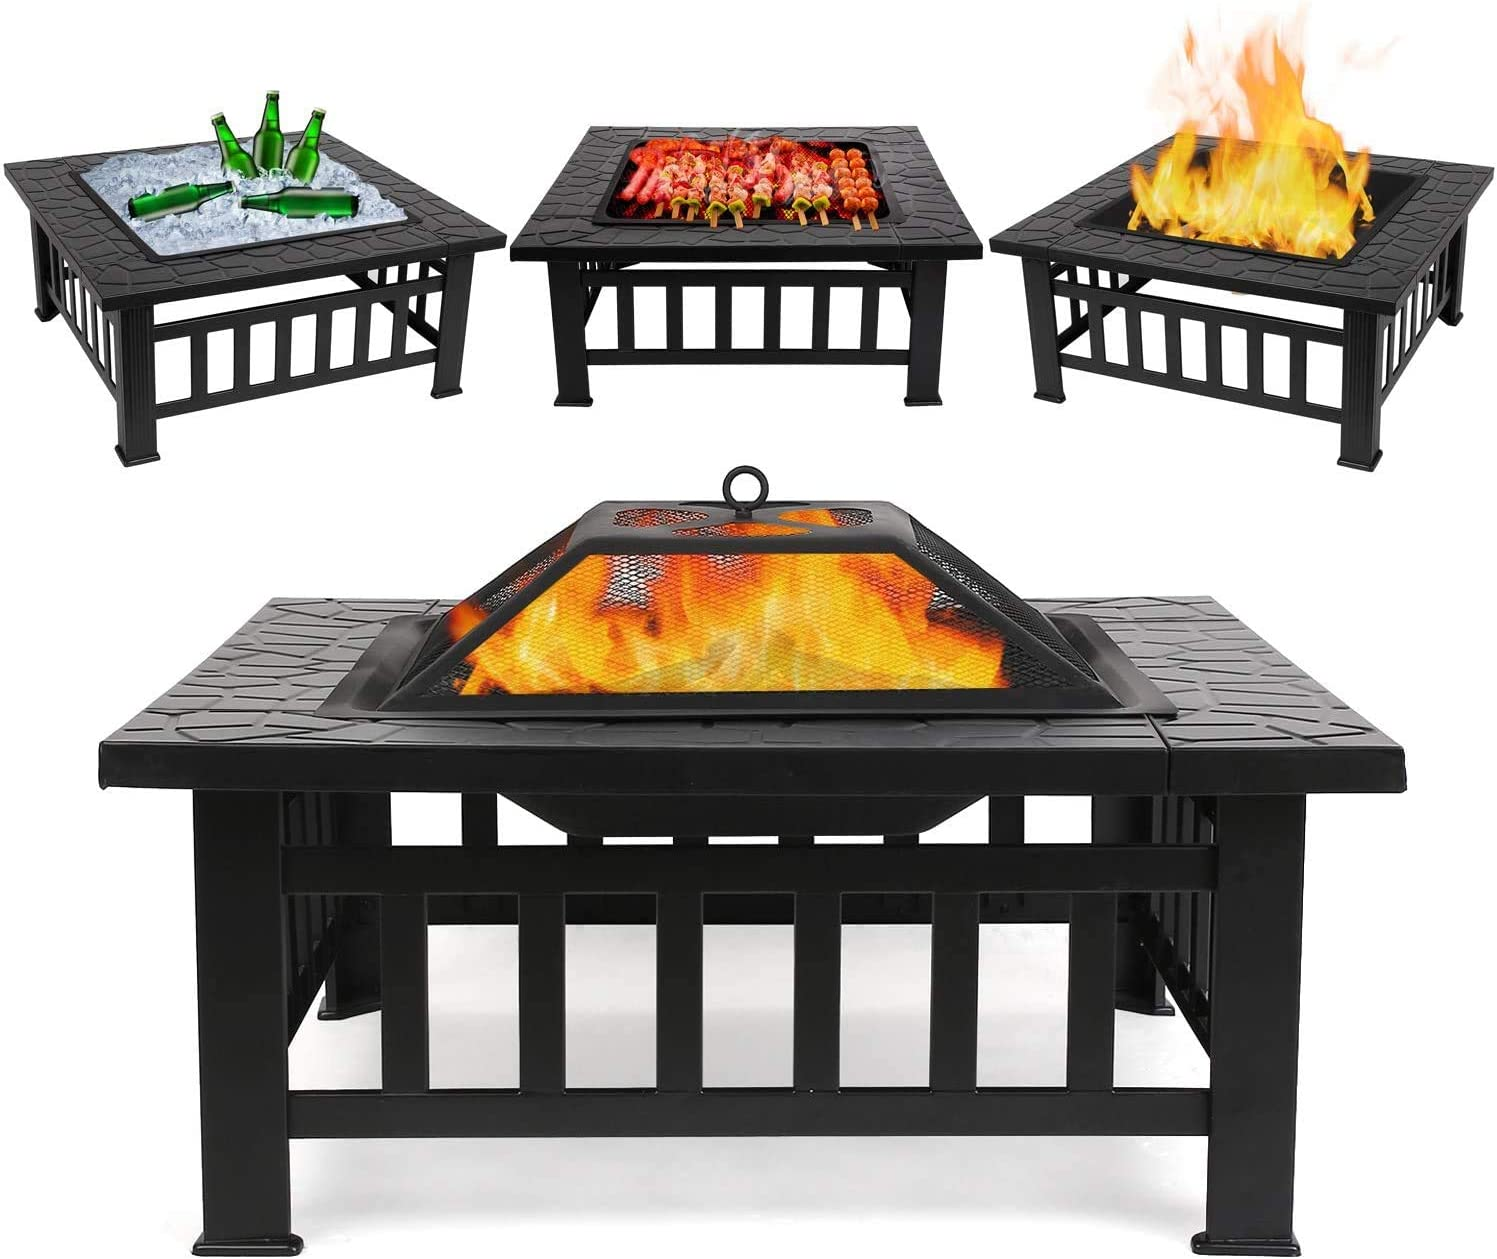 FIXKIT Outdoor Fire Pit Table